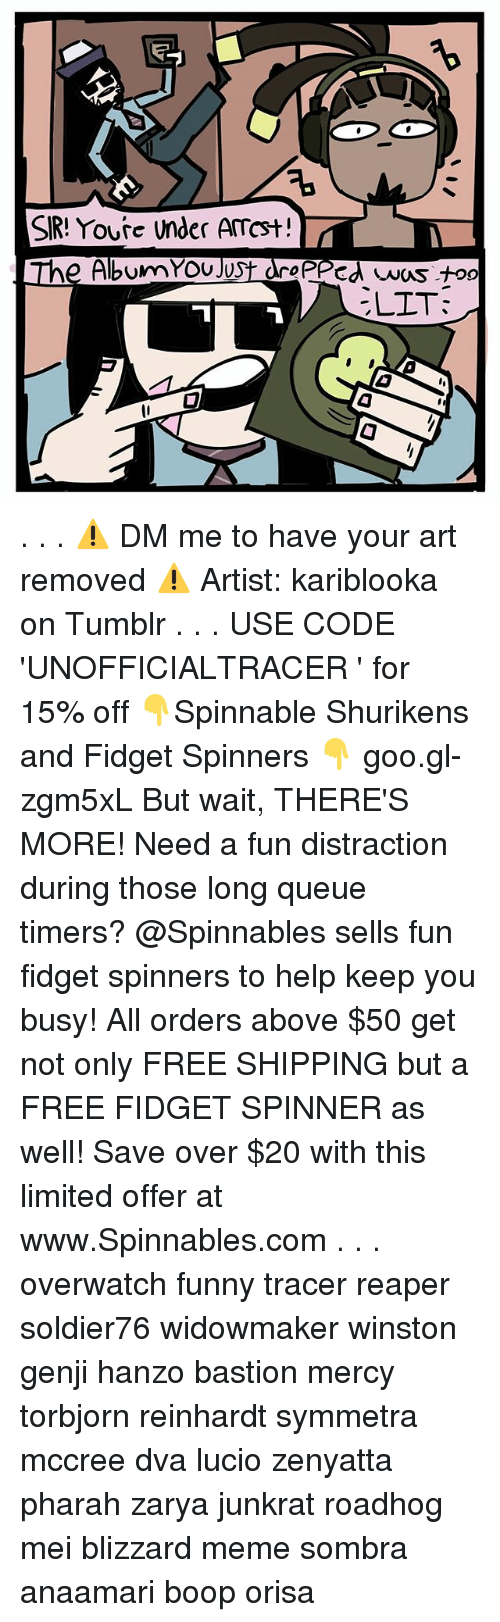 Wait Theres More: SR! Youre under Amcst!  The AlbumYOU JUS  OPPcd was too  ELIT: . . . ⚠ DM me to have your art removed ⚠ Artist: kariblooka on Tumblr . . . USE CODE 'UNOFFICIALTRACER ' for 15% off 👇Spinnable Shurikens and Fidget Spinners 👇 goo.gl-zgm5xL But wait, THERE'S MORE! Need a fun distraction during those long queue timers? @Spinnables sells fun fidget spinners to help keep you busy! All orders above $50 get not only FREE SHIPPING but a FREE FIDGET SPINNER as well! Save over $20 with this limited offer at www.Spinnables.com . . . overwatch funny tracer reaper soldier76 widowmaker winston genji hanzo bastion mercy torbjorn reinhardt symmetra mccree dva lucio zenyatta pharah zarya junkrat roadhog mei blizzard meme sombra anaamari boop orisa